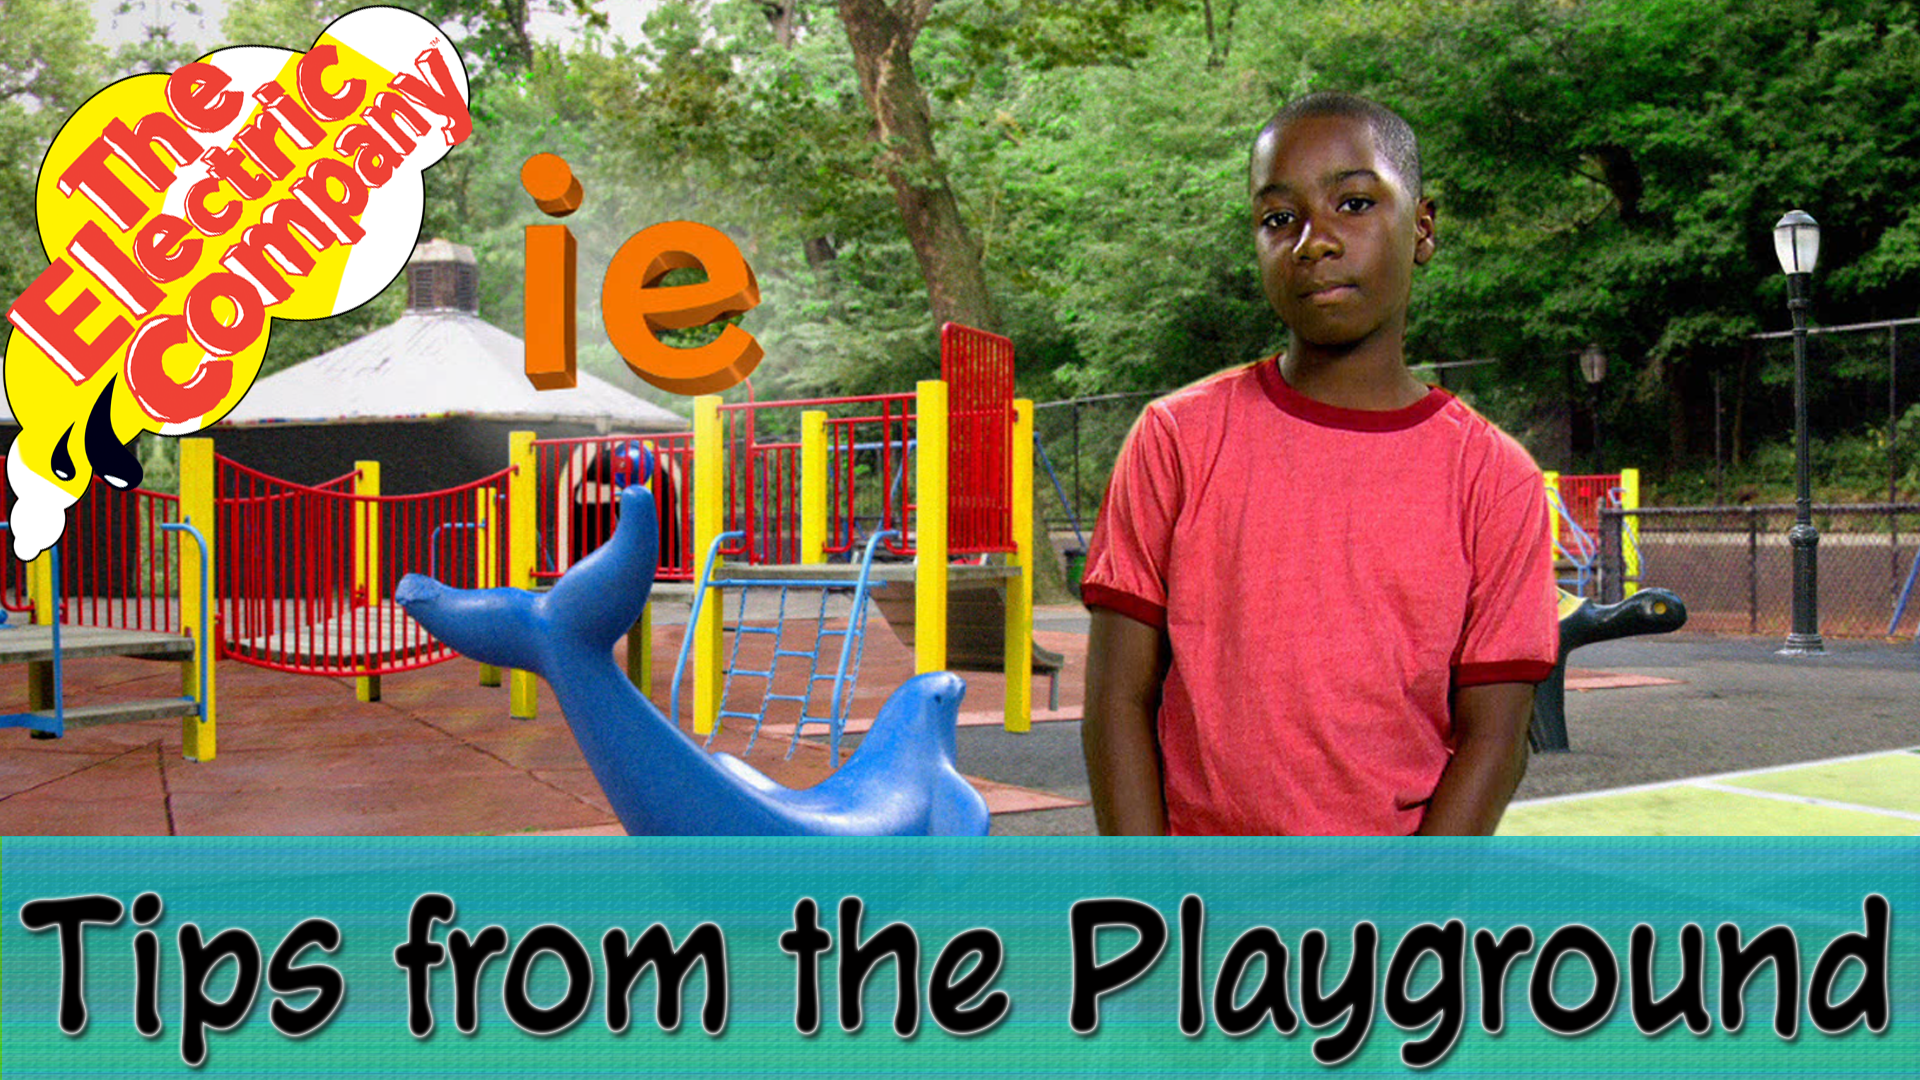 Tips from the Playground: Mad at -IE-